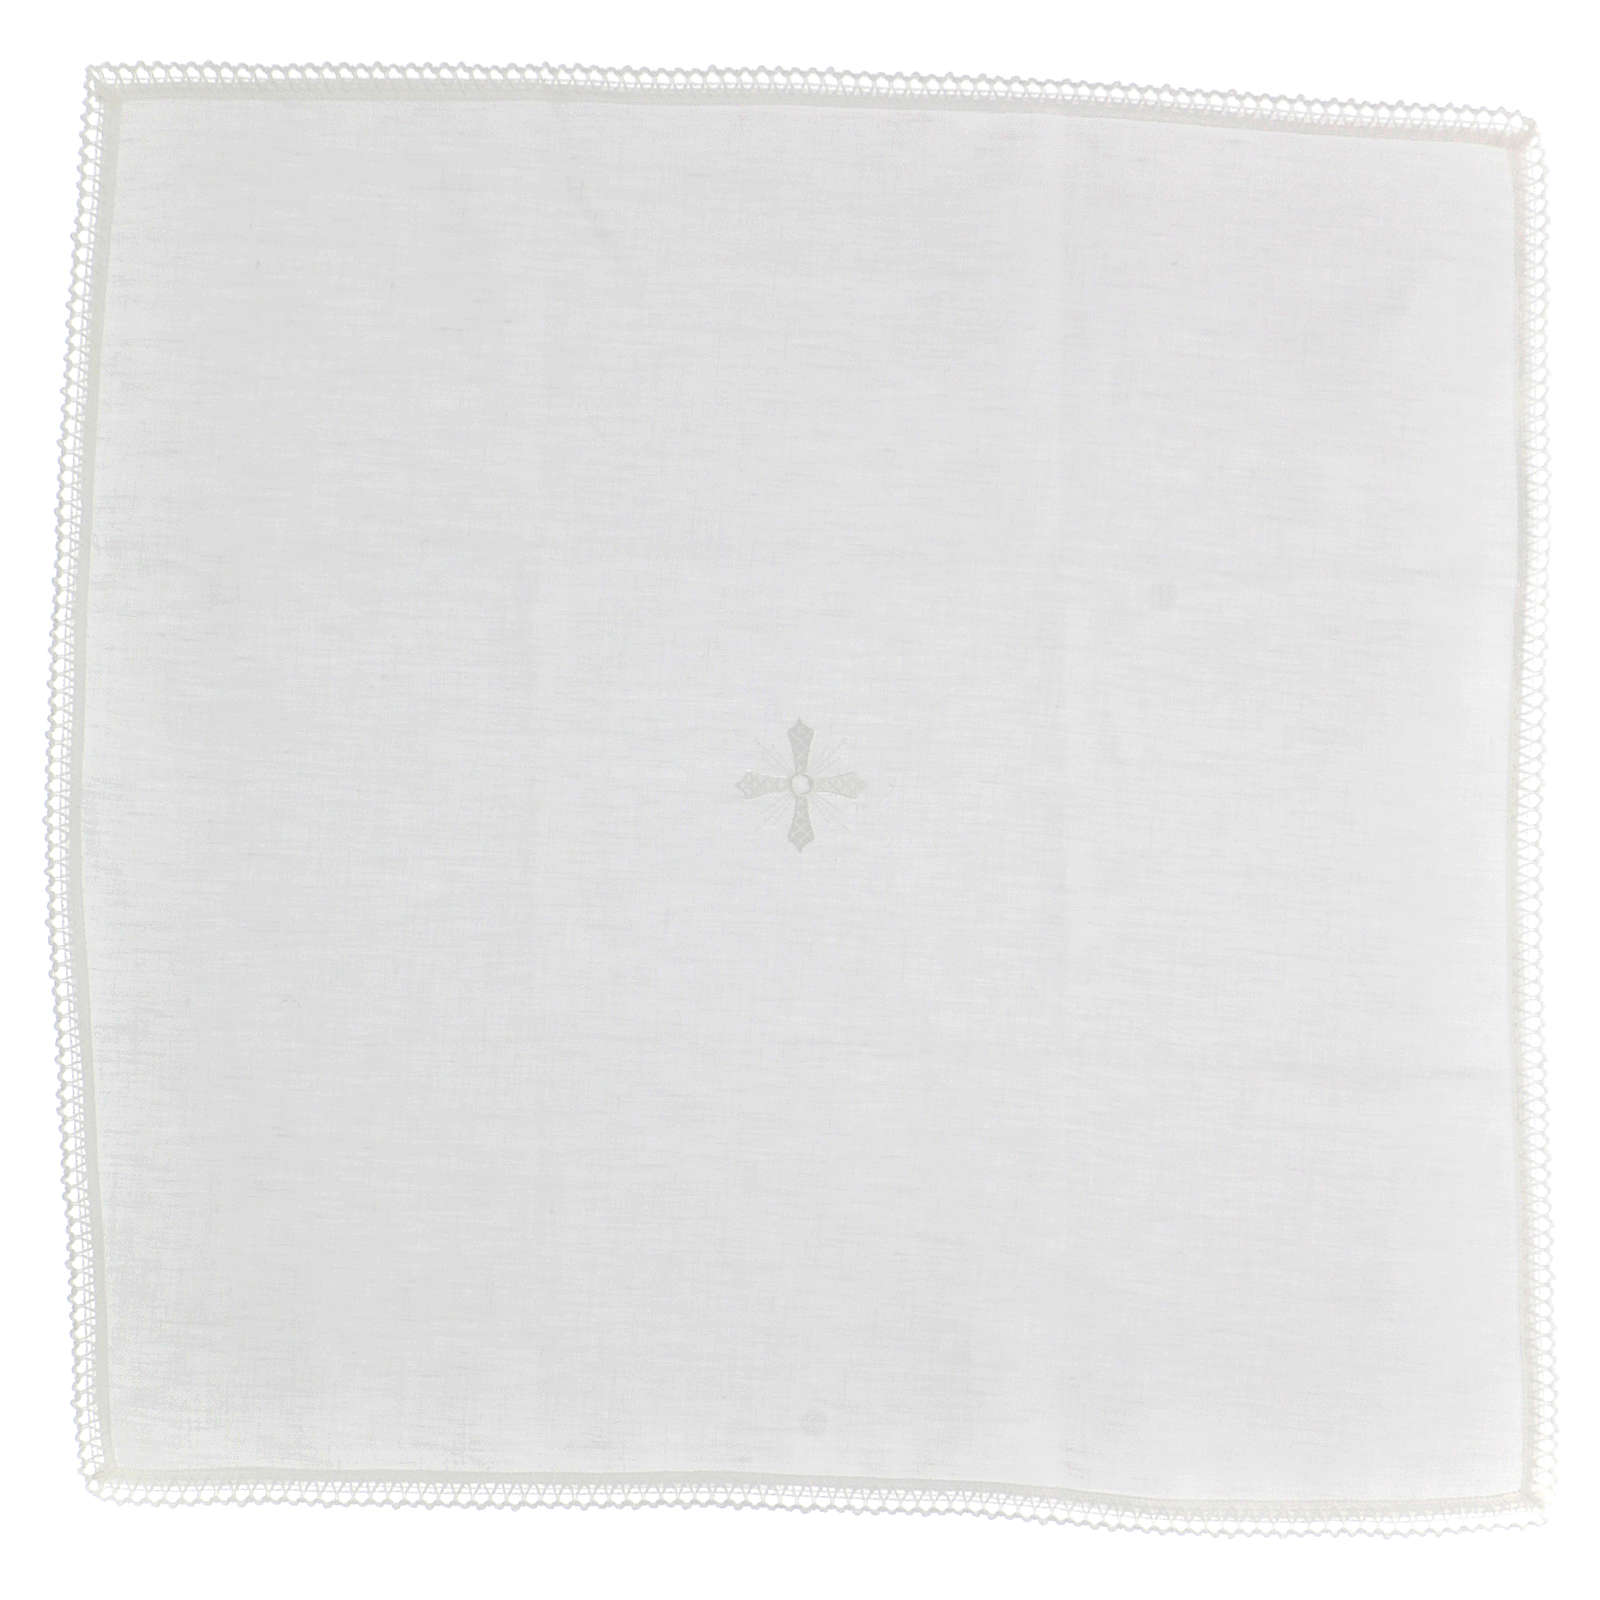 Corporal blanc 100% lin avec broderie blanche 4